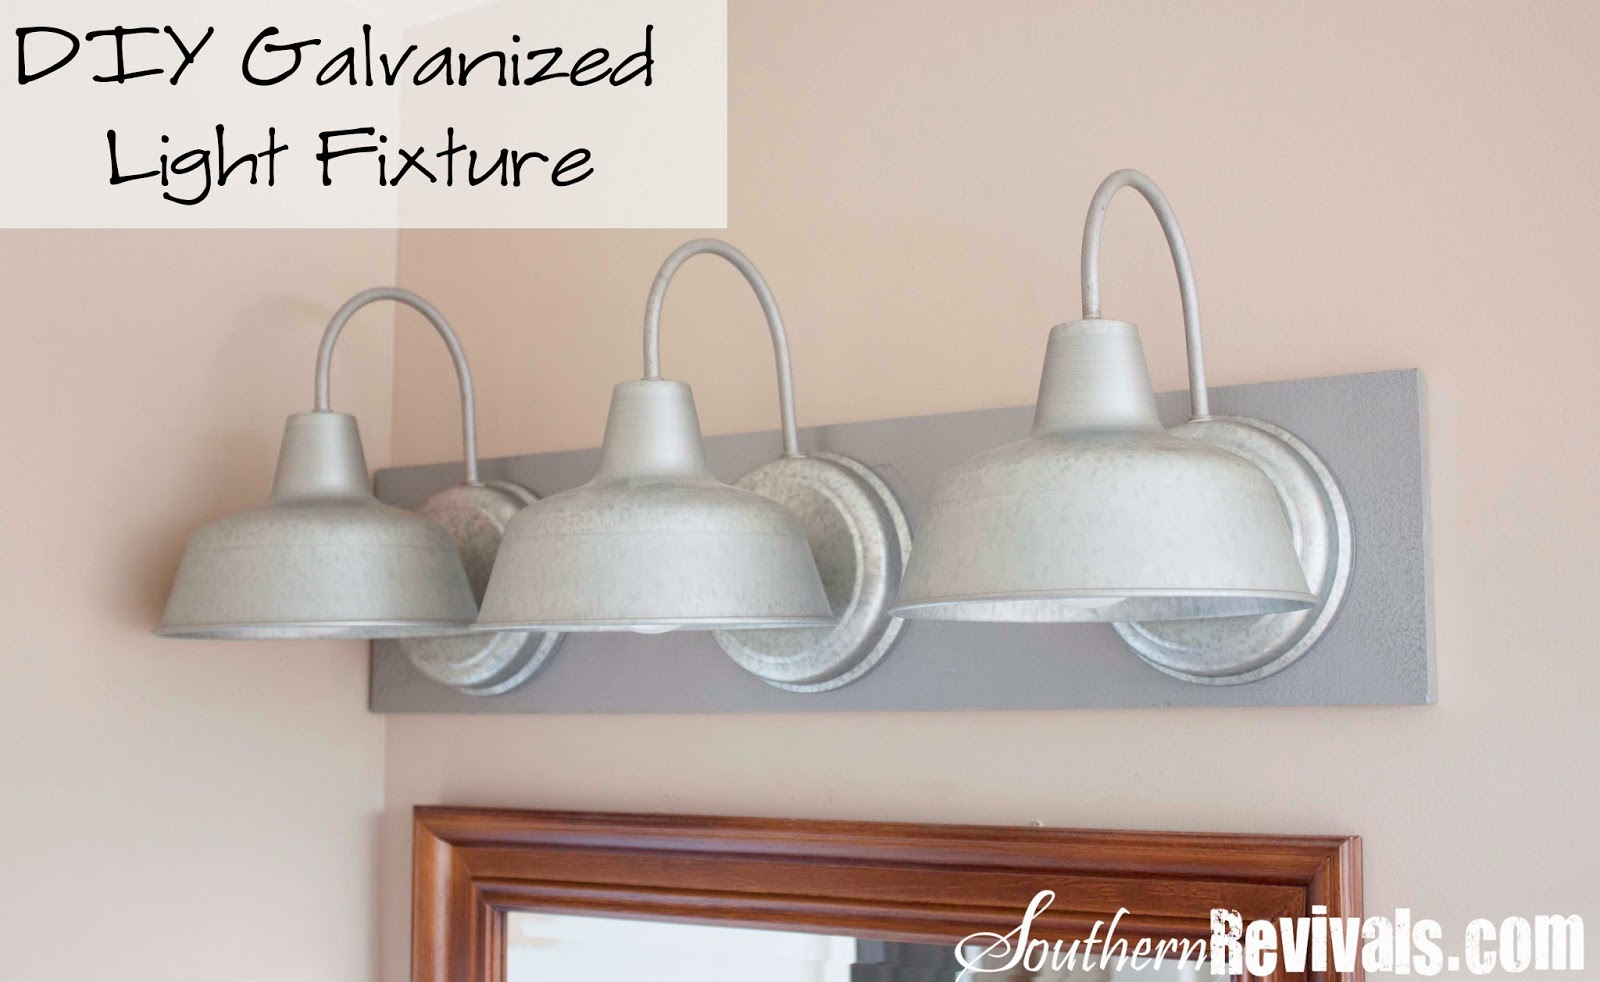 DIY Triple Galvanized Gooseneck Vanity Light Fixture For Under - Nautical bathroom vanity lights